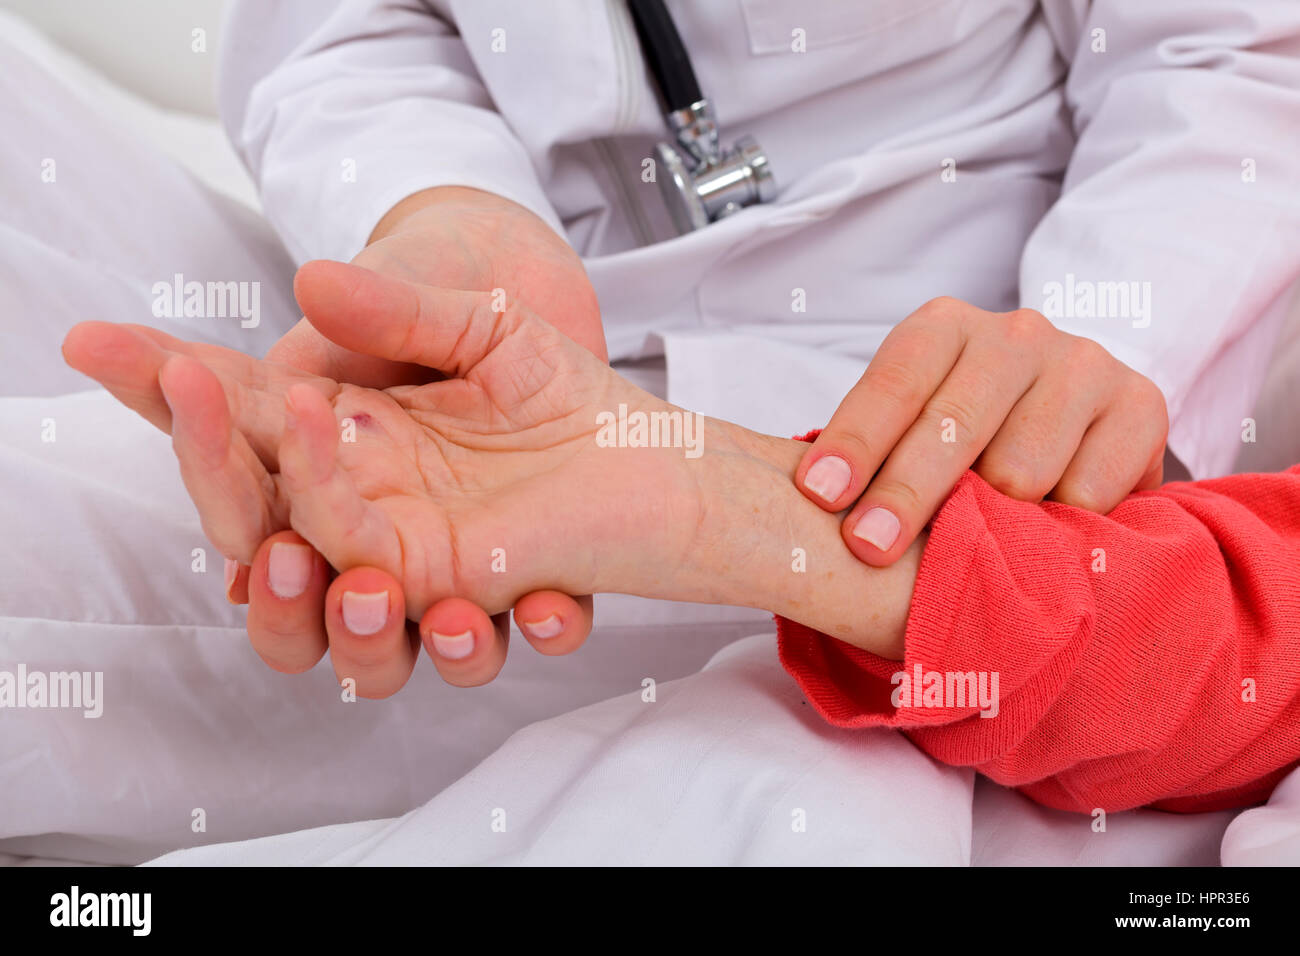 Caregiver checking patients blood pressure - Stock Image